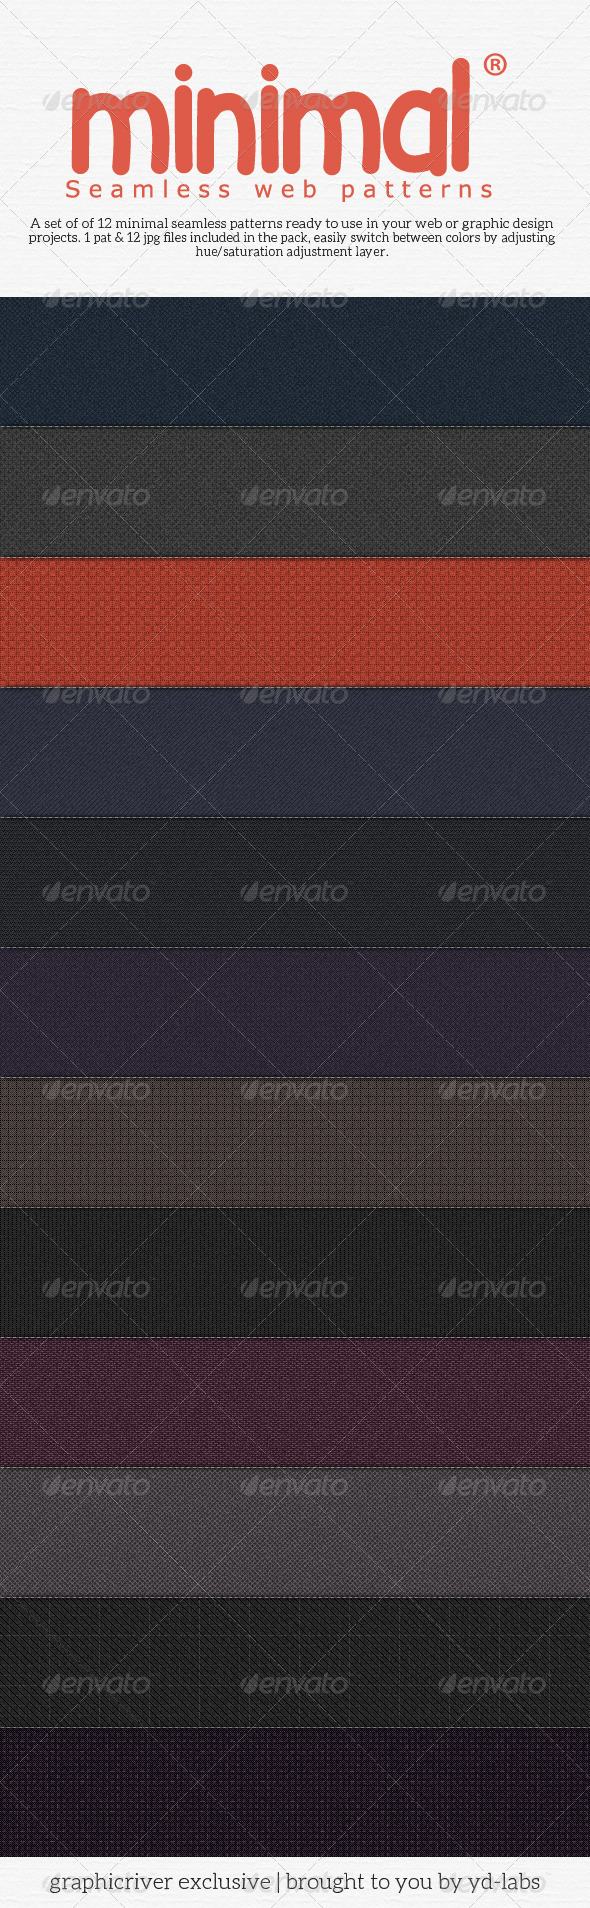 GraphicRiver Minimal Seamless Web Patterns Pack 1 4849142